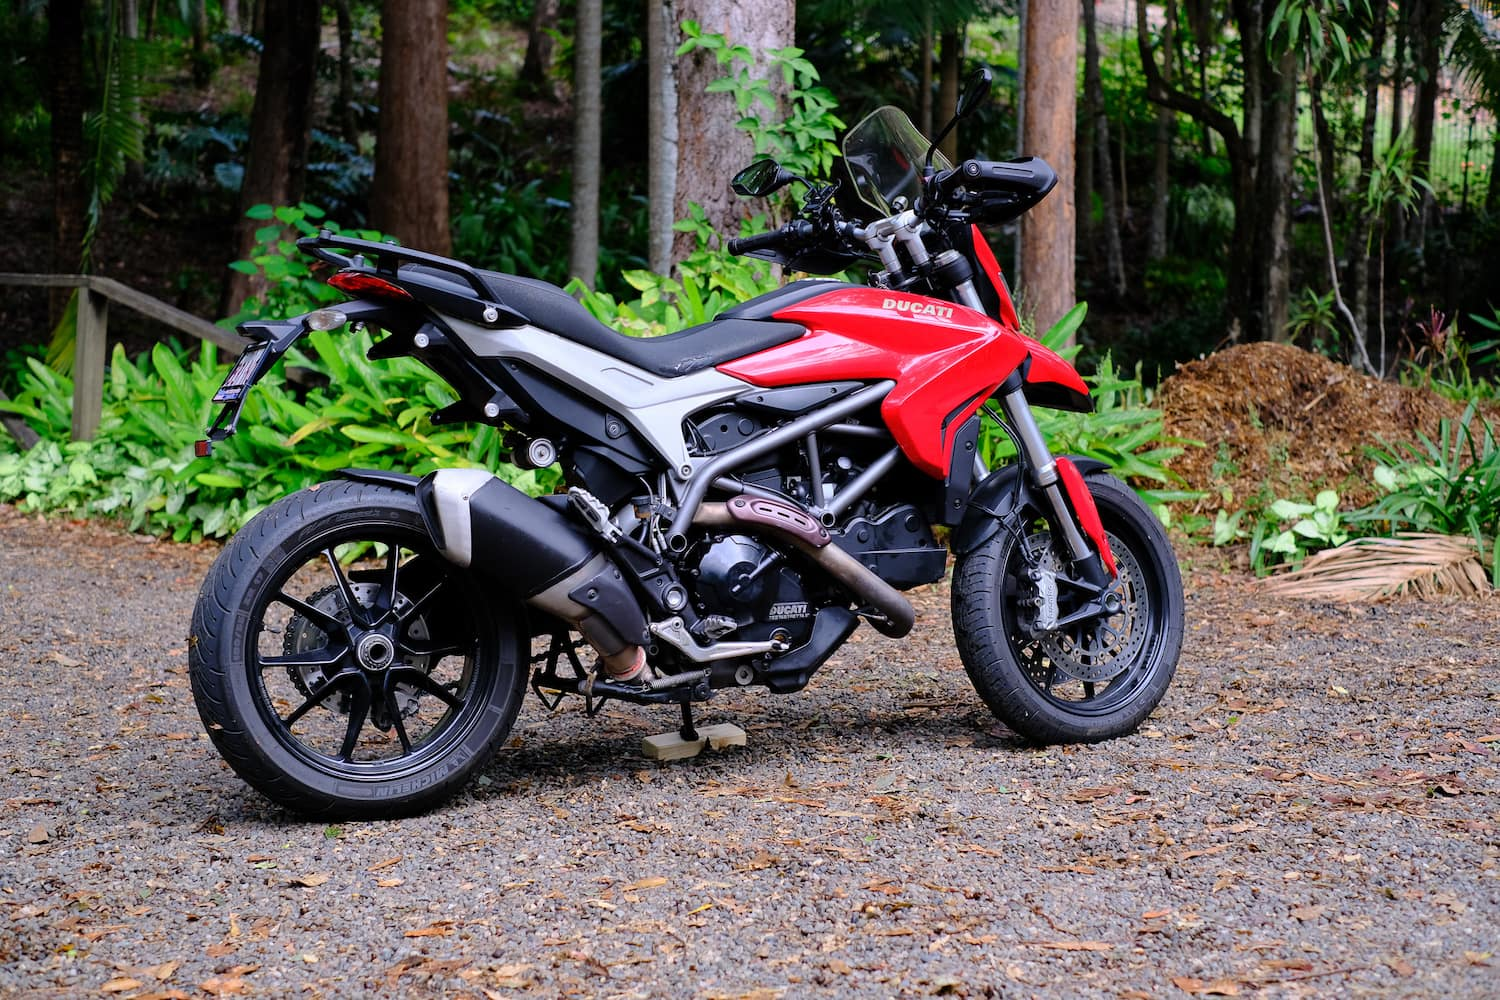 Red ducati hyperstrada 821 with a stock exhaust.